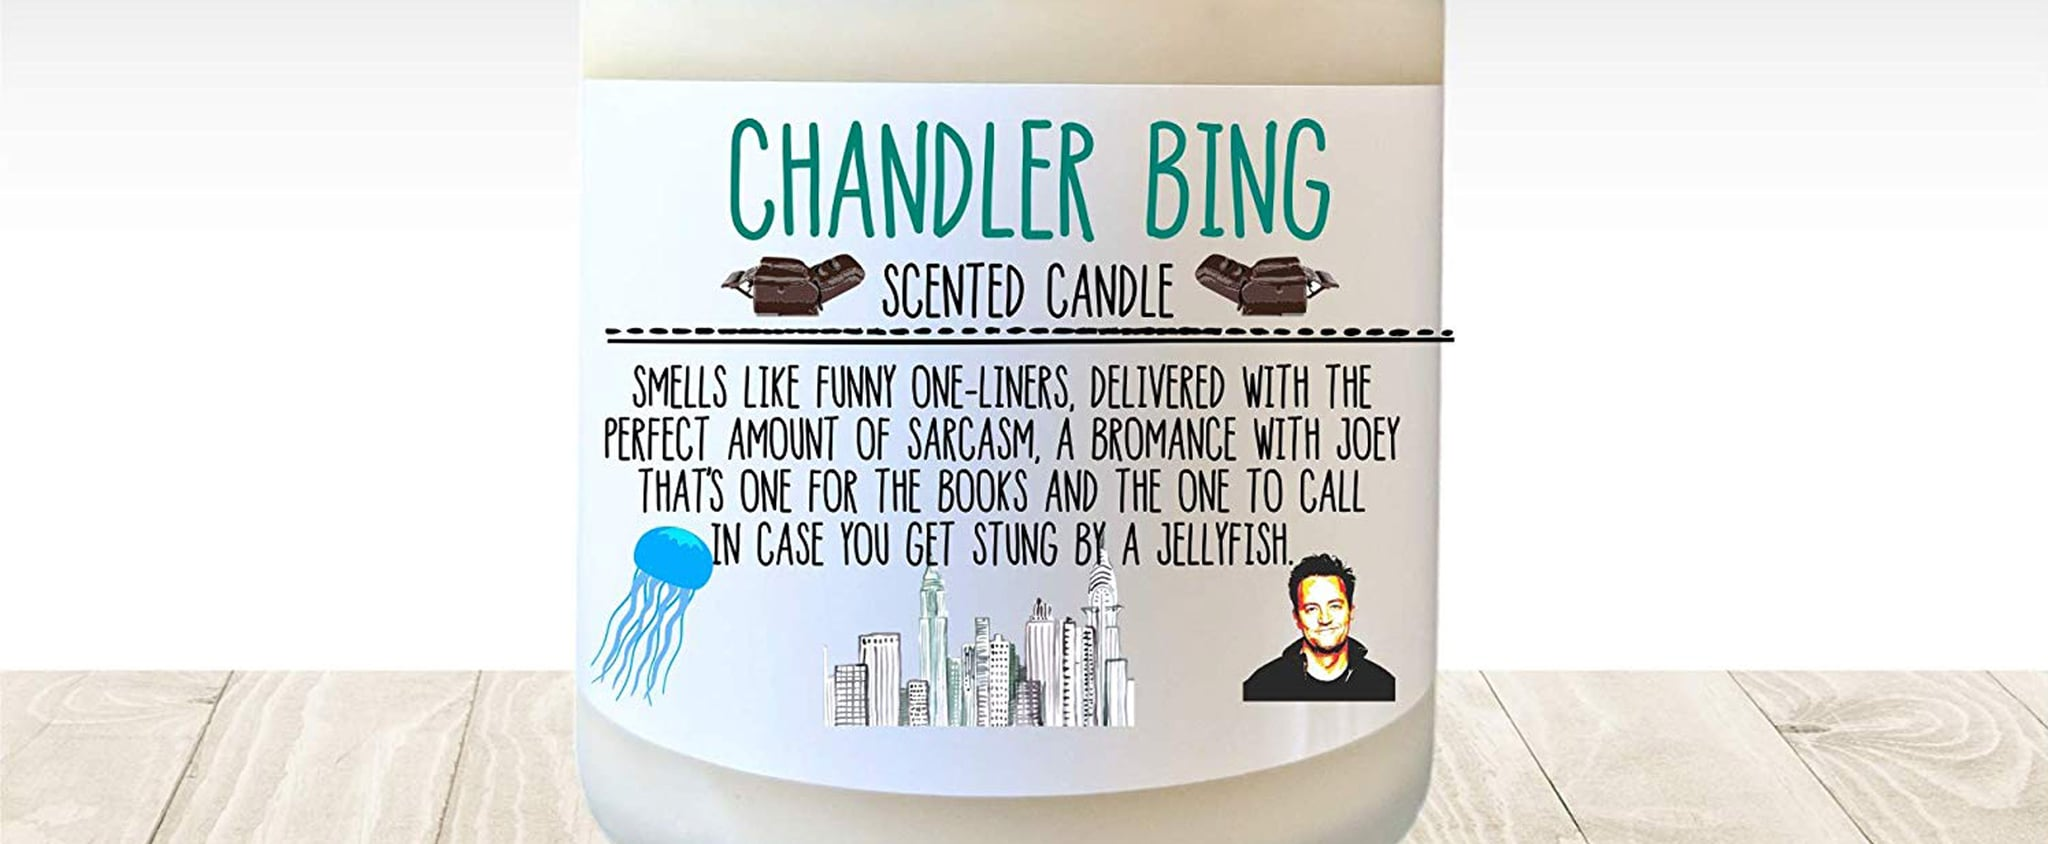 Friends Fans Can Get a Chandler Bing Candle on Amazon